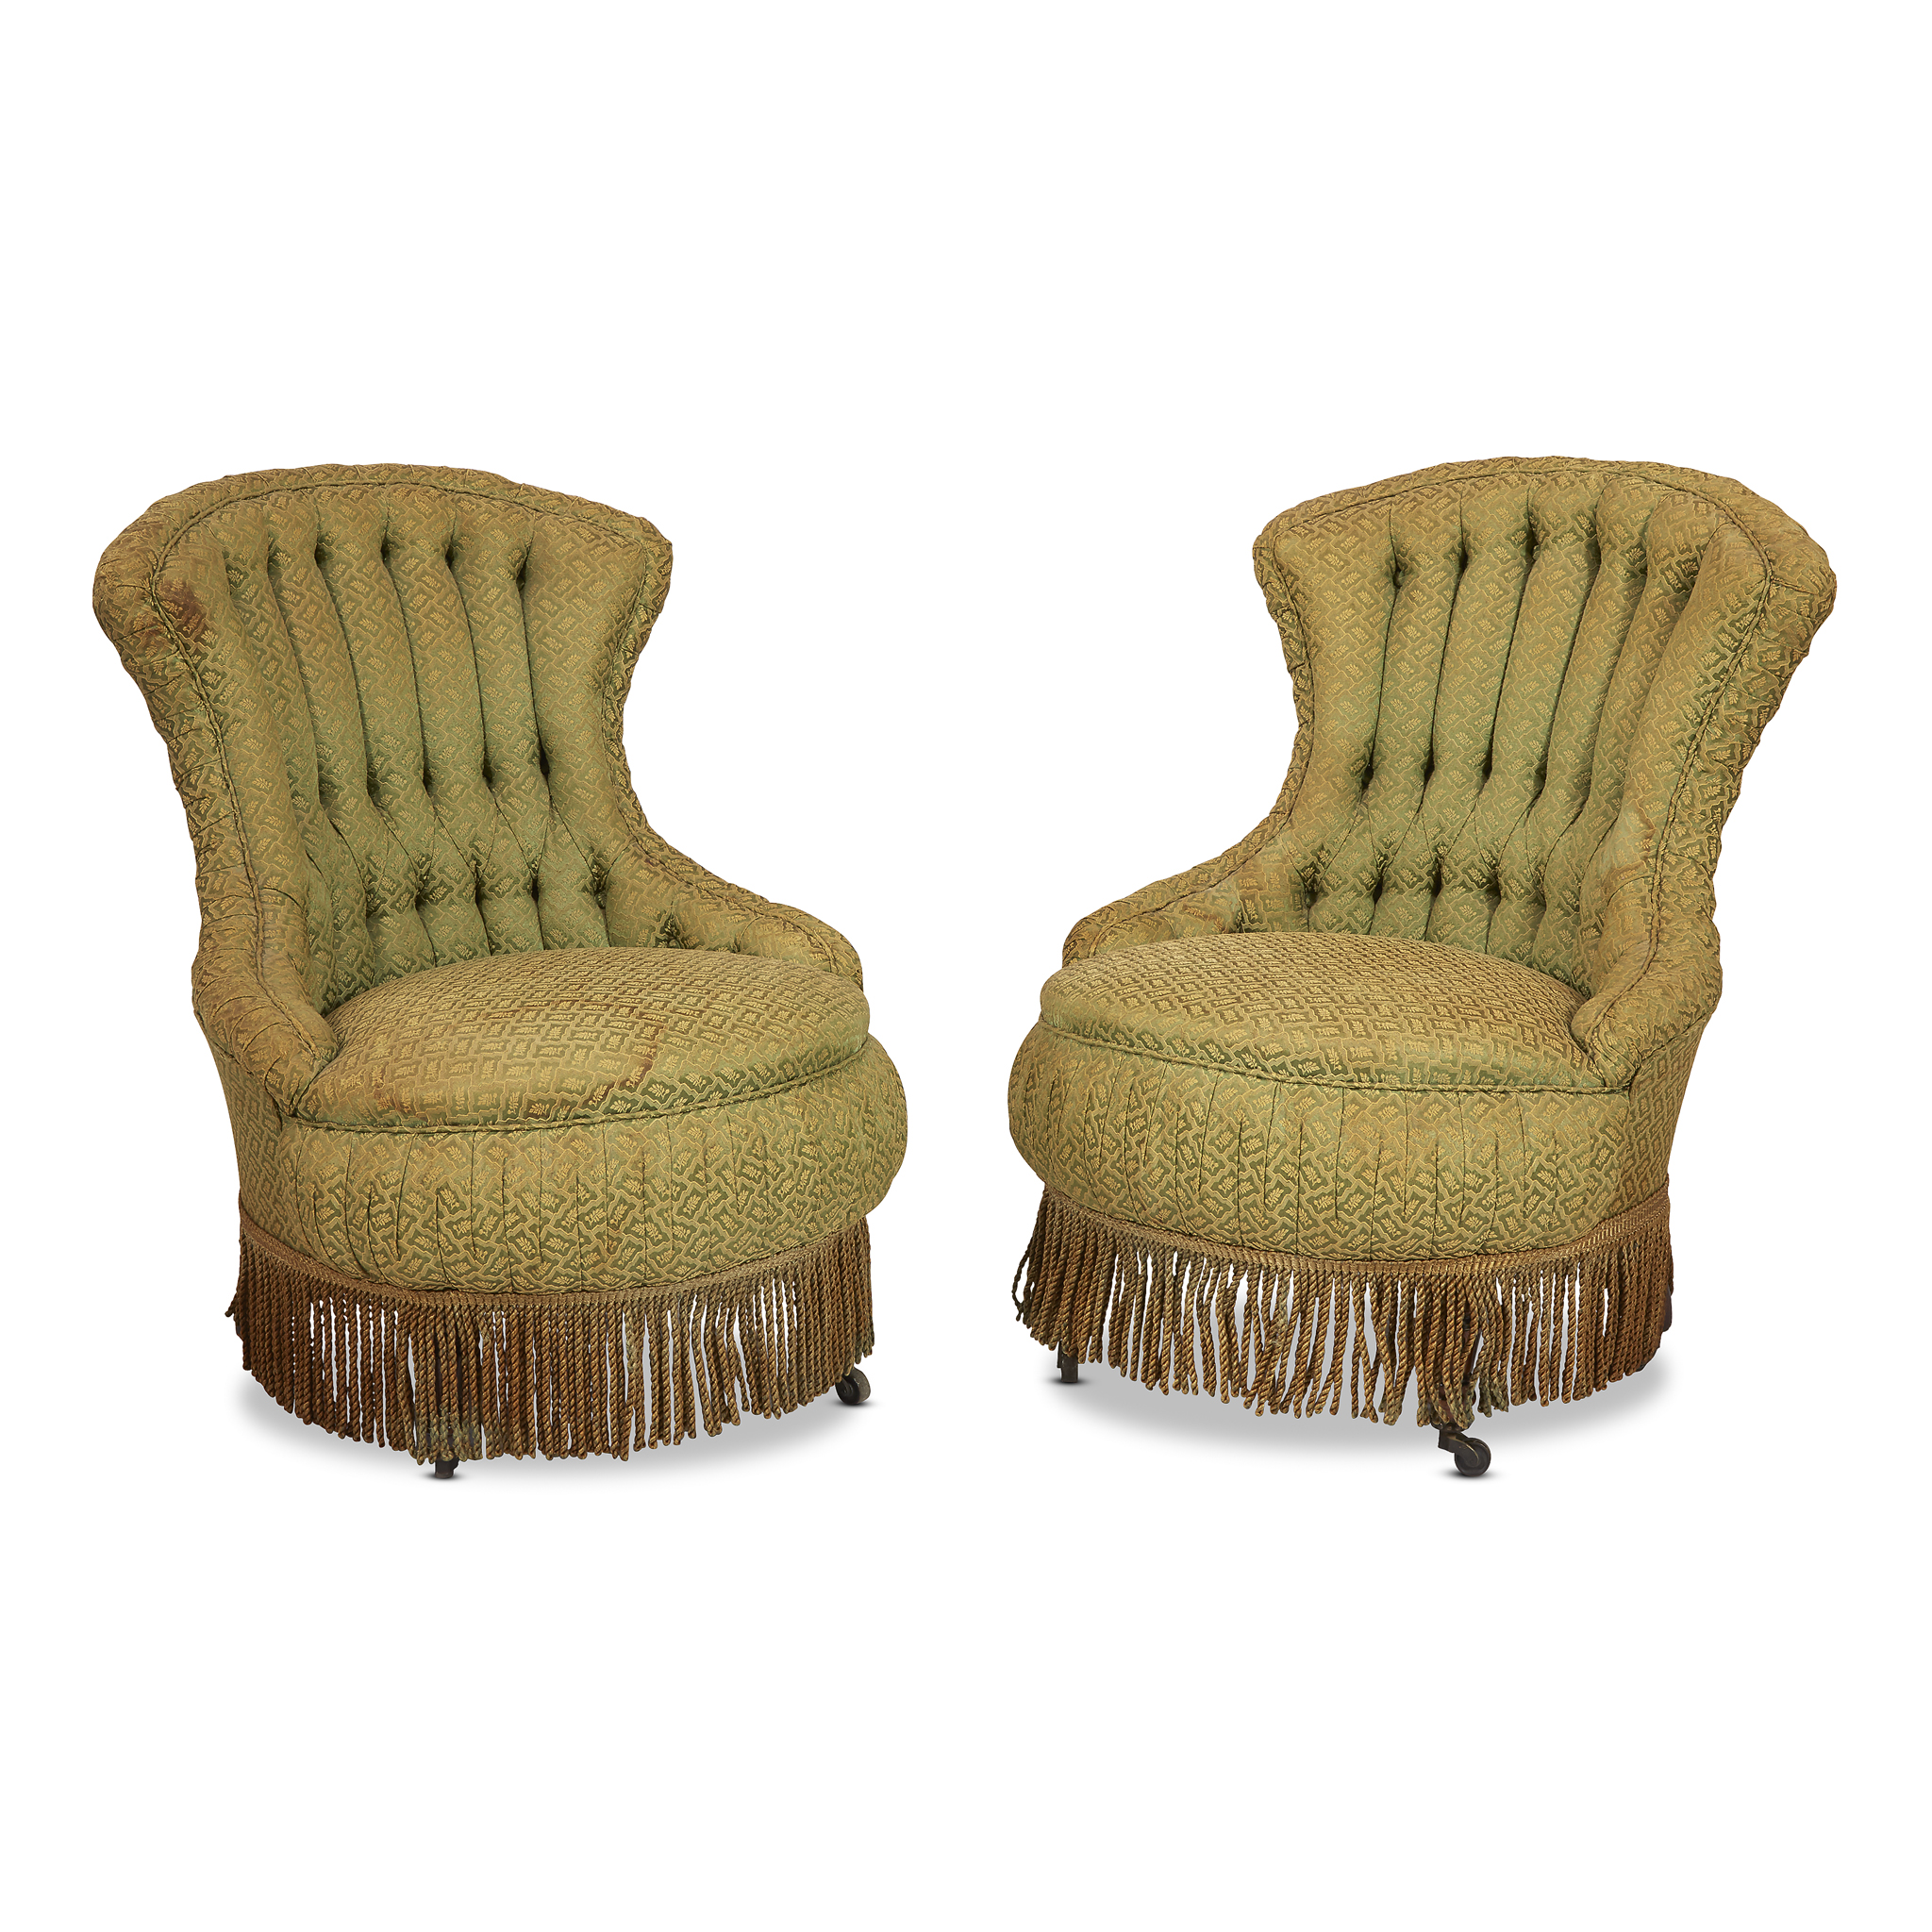 upholstered slipper chair bedroom deck a pair of napoleon iii style chairs second half 1 lofty marketplace